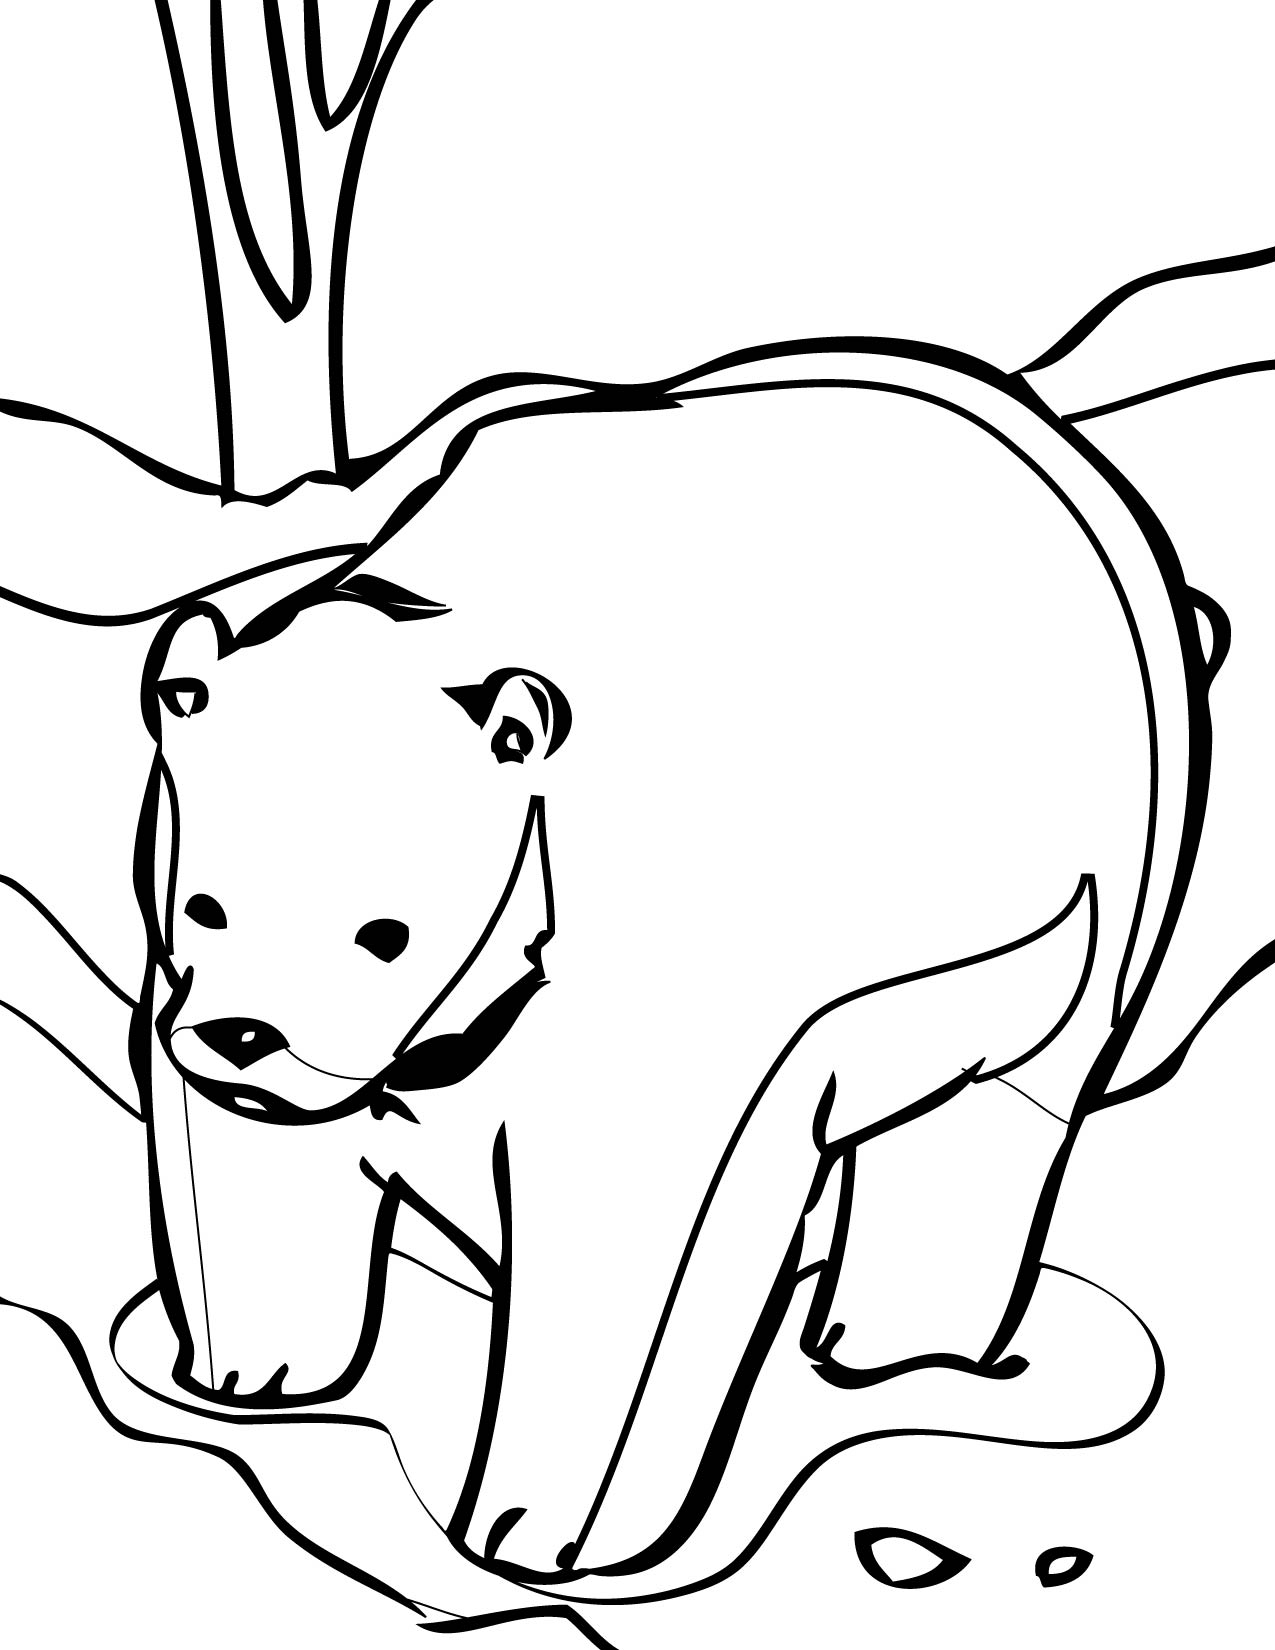 coloring pages of bears top 10 free printable bear coloring pages online of coloring bears pages